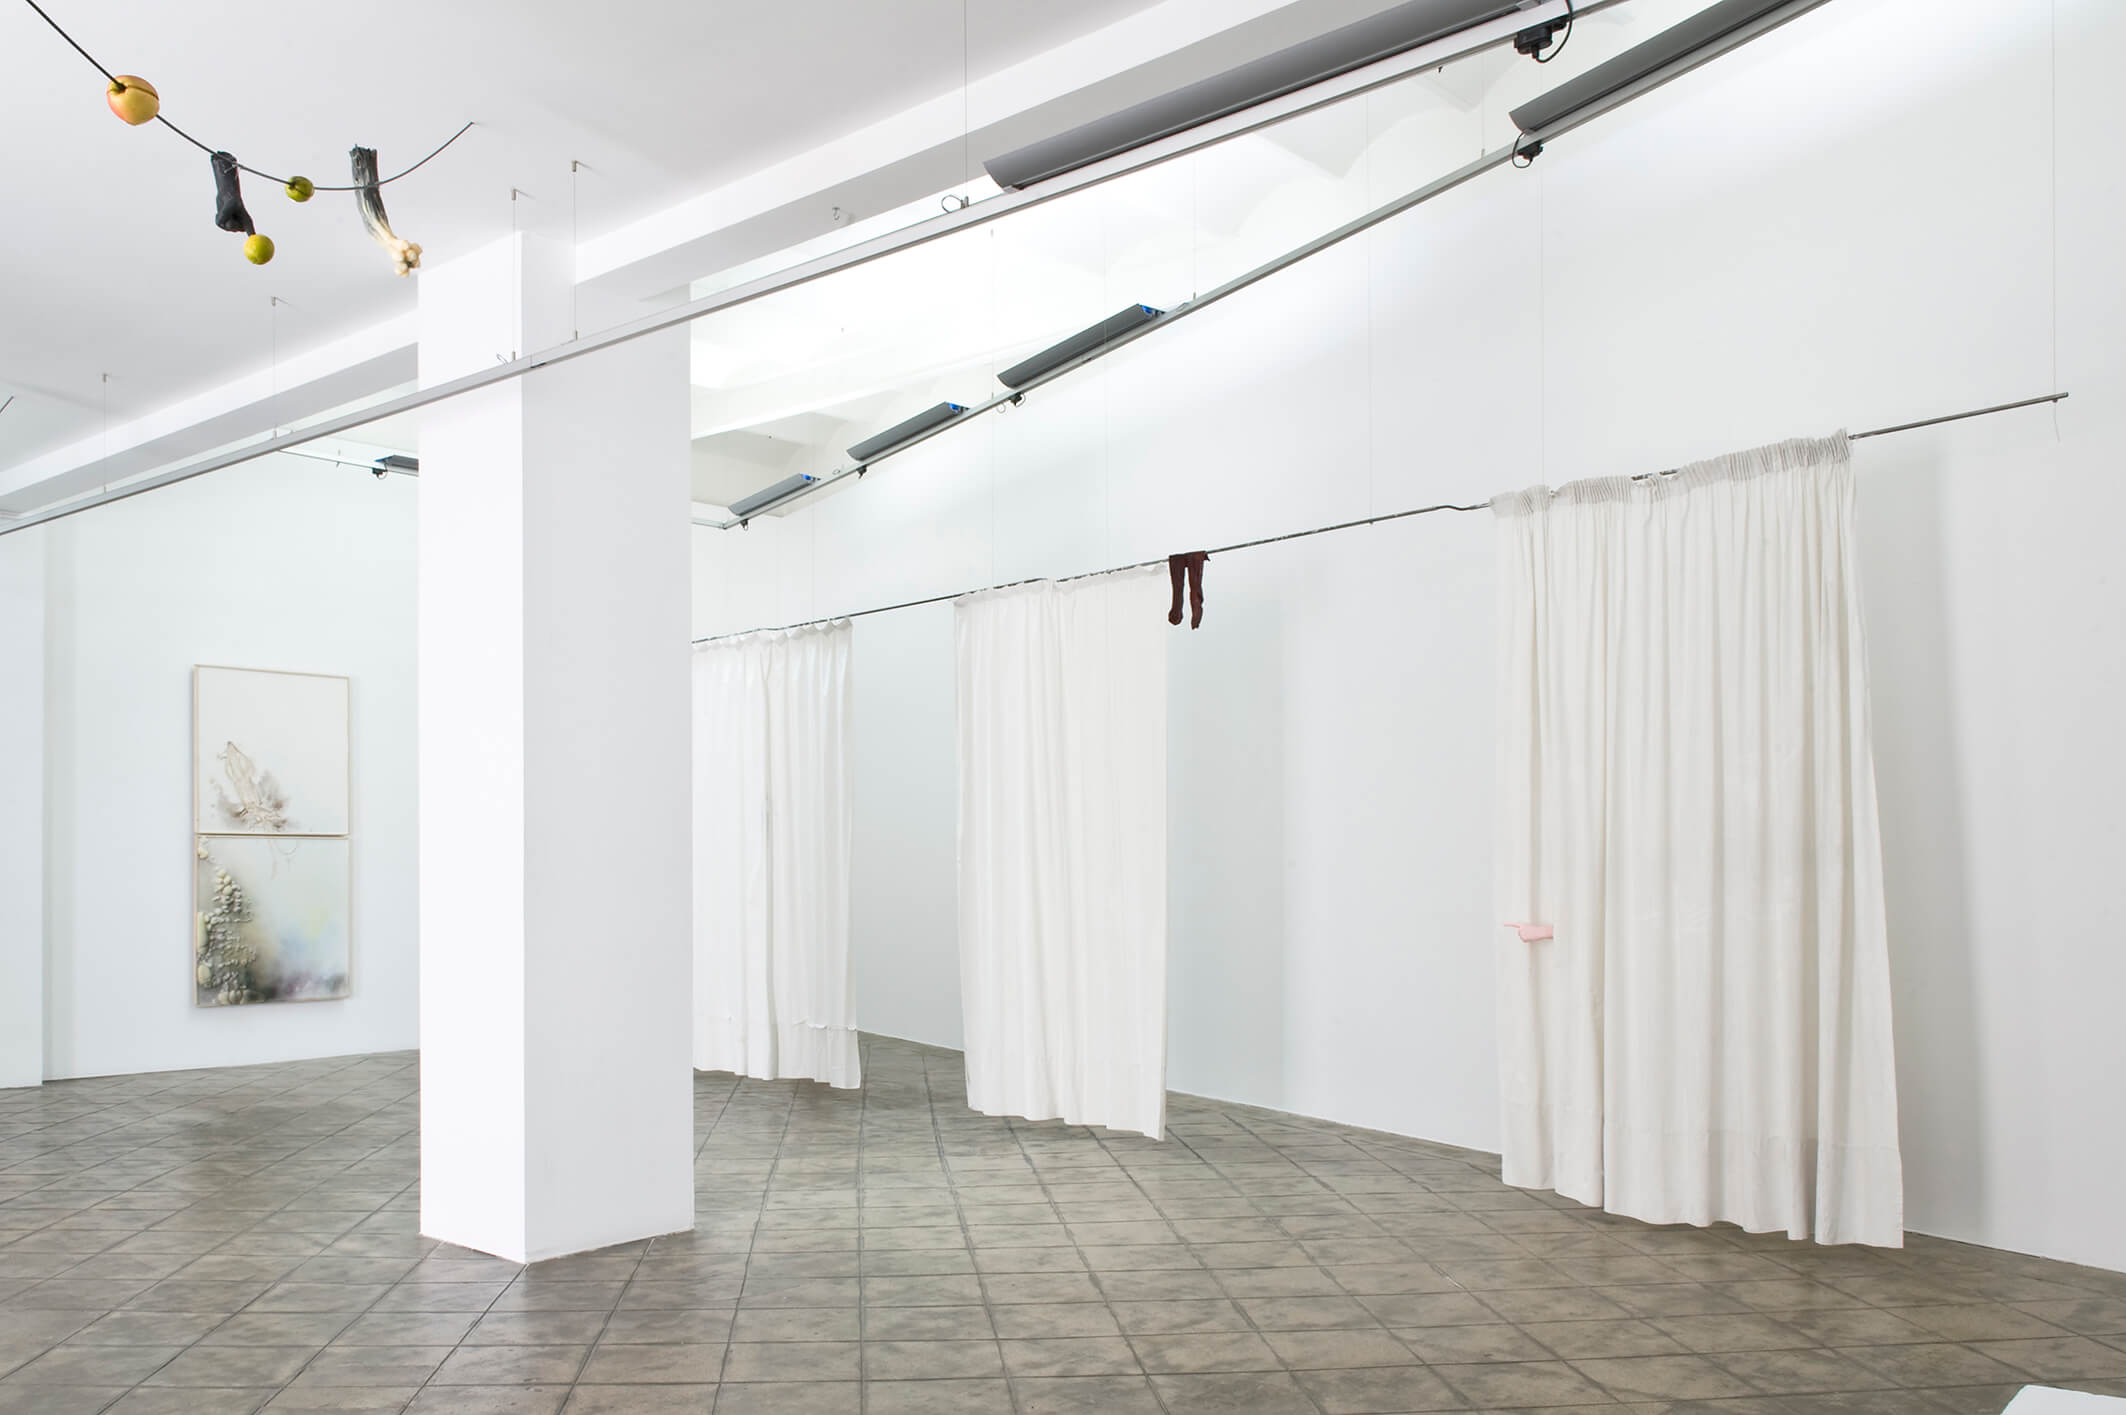 Installation view: The Constant Repetition of False, ProjecteSD, Barcelona, 2014 | The Constant Repetition of False | ProjecteSD